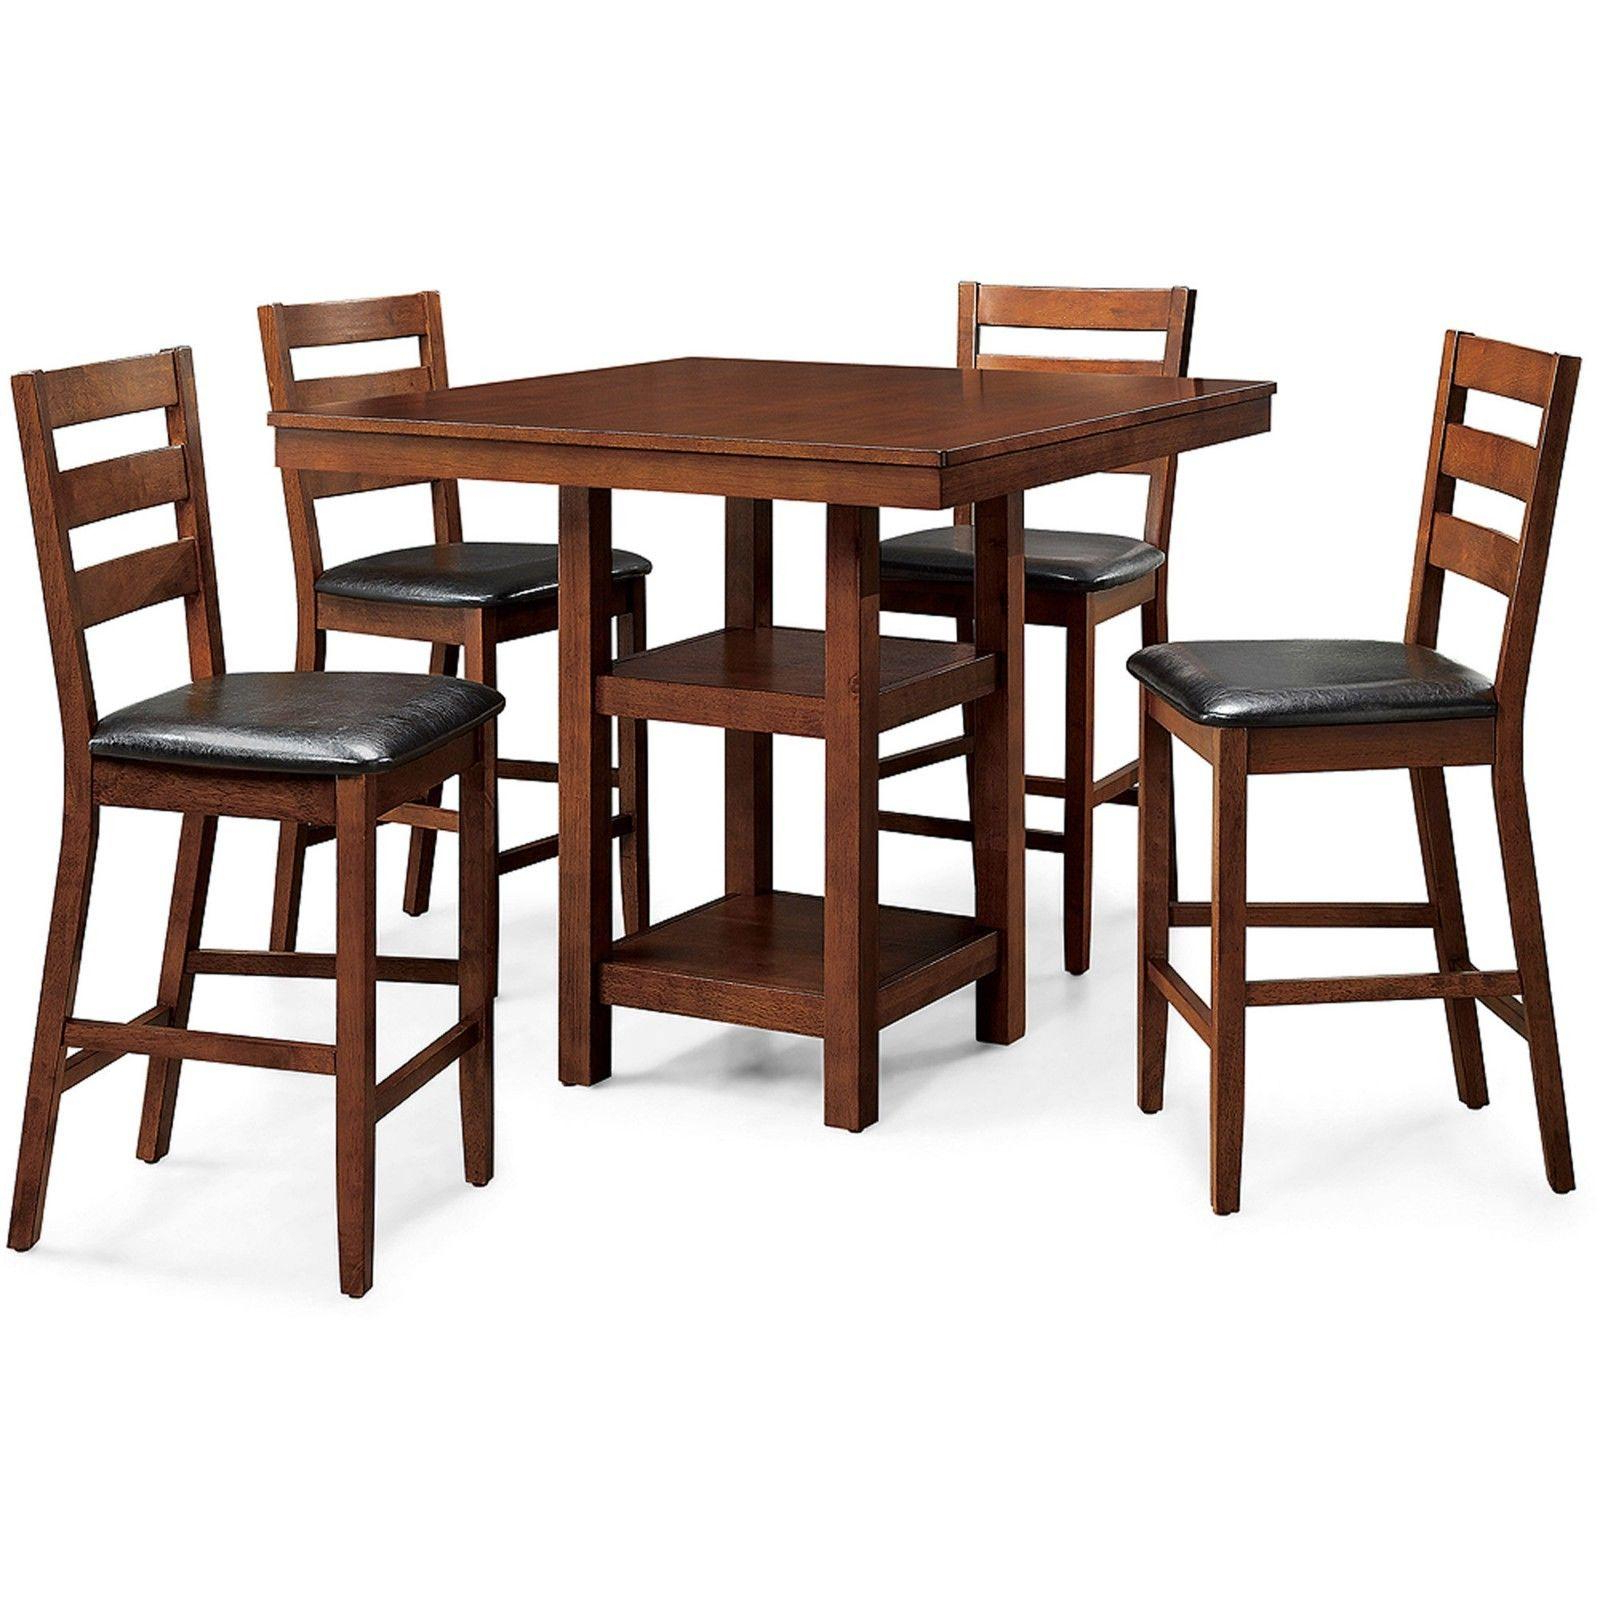 Ligon 3 Piece Breakfast Nook Dining Sets Intended For Most Popular Counter Height Dining Table Set W/ 4 Hig (Gallery 15 of 20)